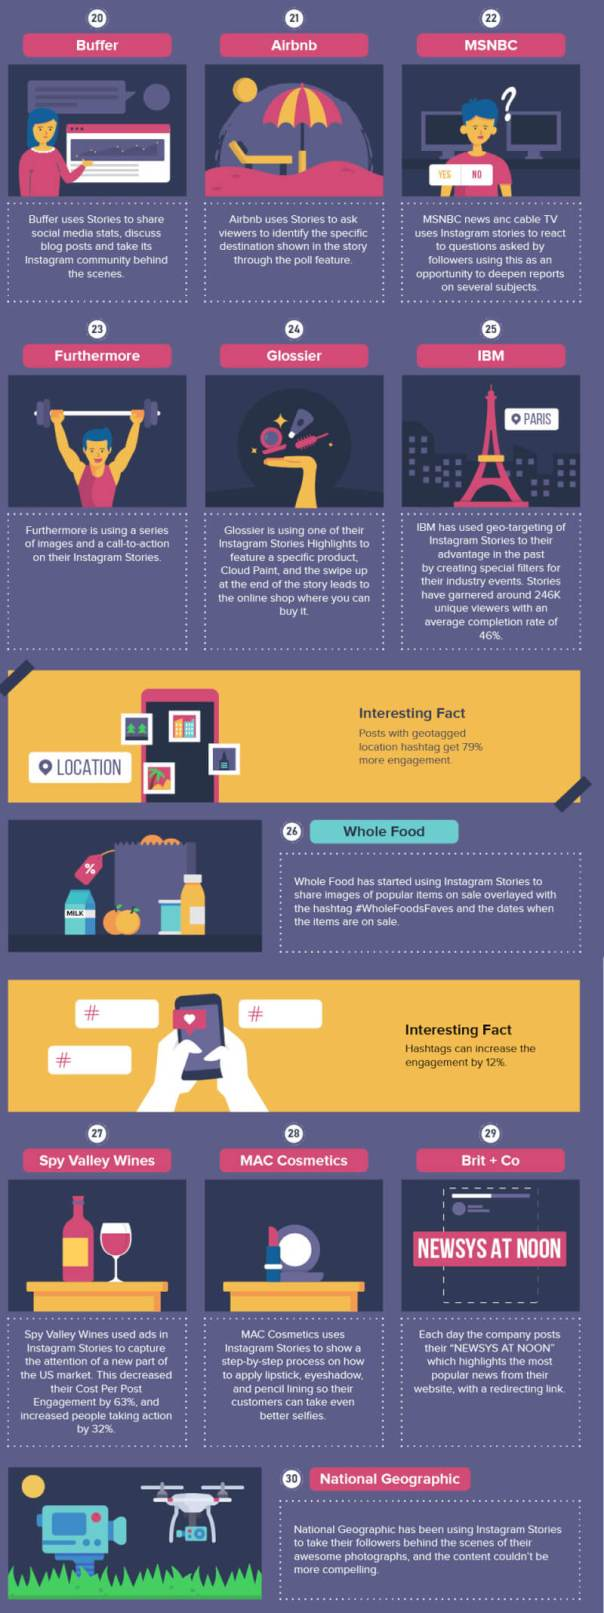 Best-Examples-of-How-Brands-Use-Instagram-Stories-Infographic_05